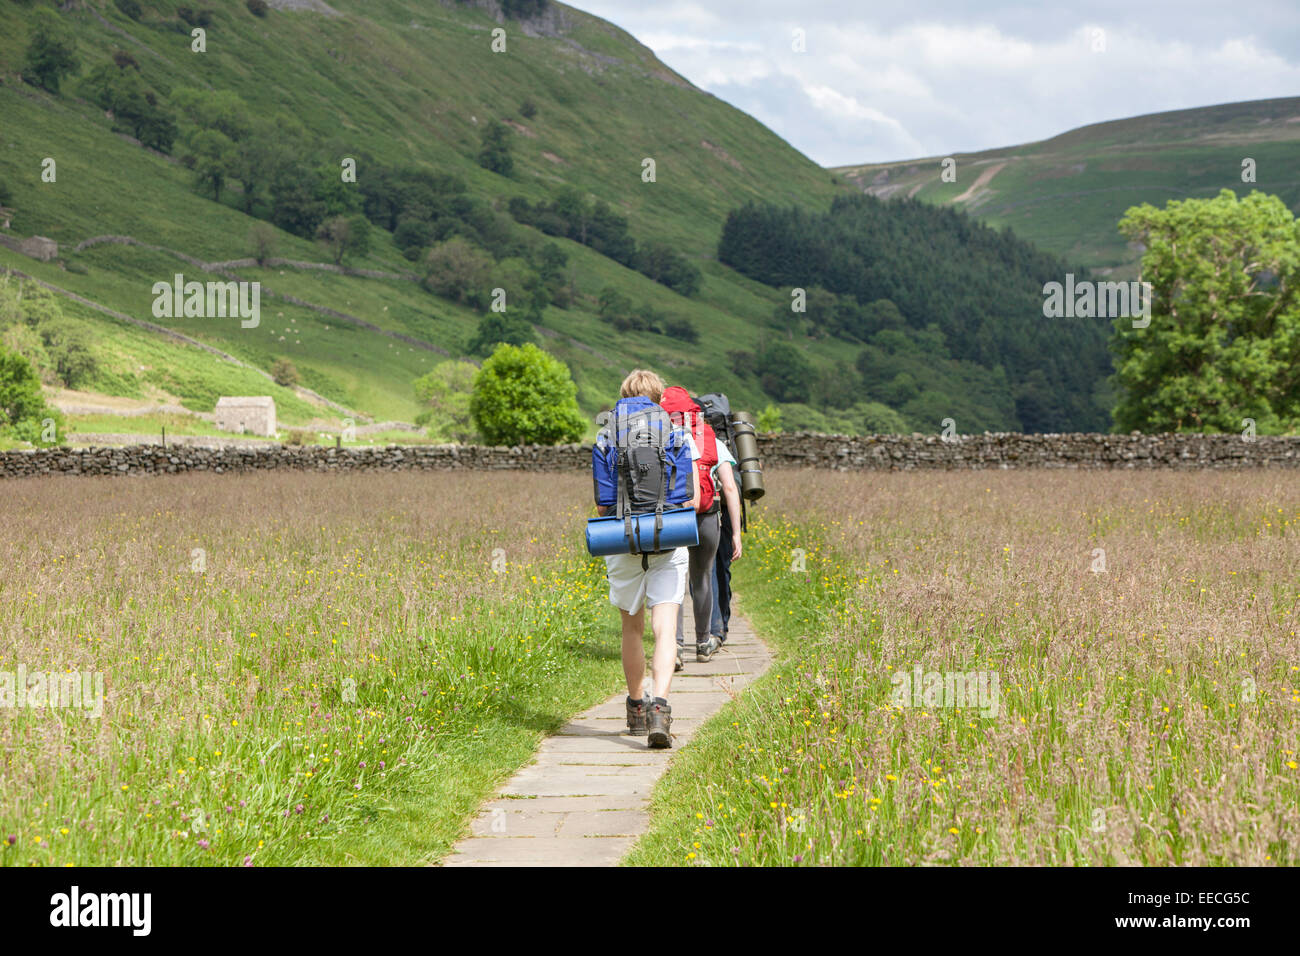 Young male backpackers on the Pennine Way near Muker, Yorkshire Dales National Park, North Yorkshire, England, UK - Stock Image